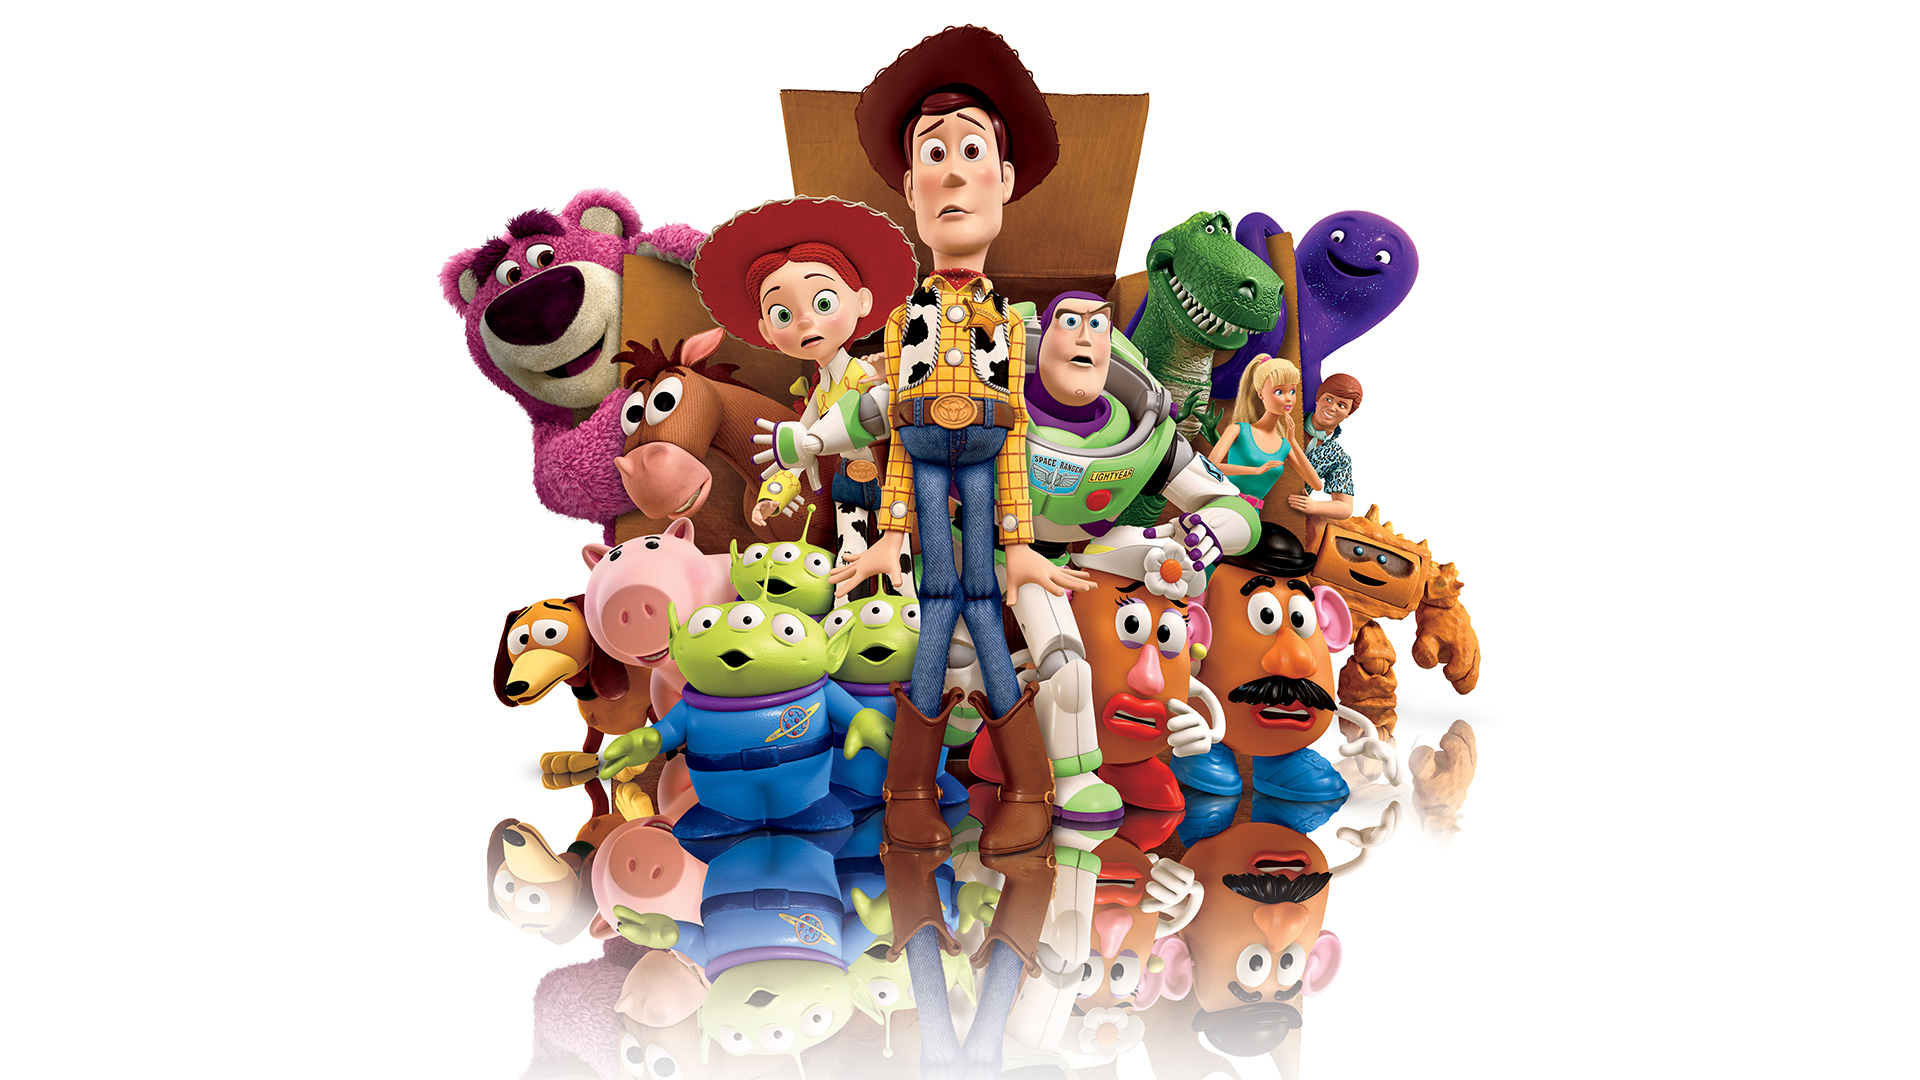 Behind The Thrills | Pixar Announces Toy Story 4 To Hit In 2017 U2013 Could This Mean More Pixar At DHS?